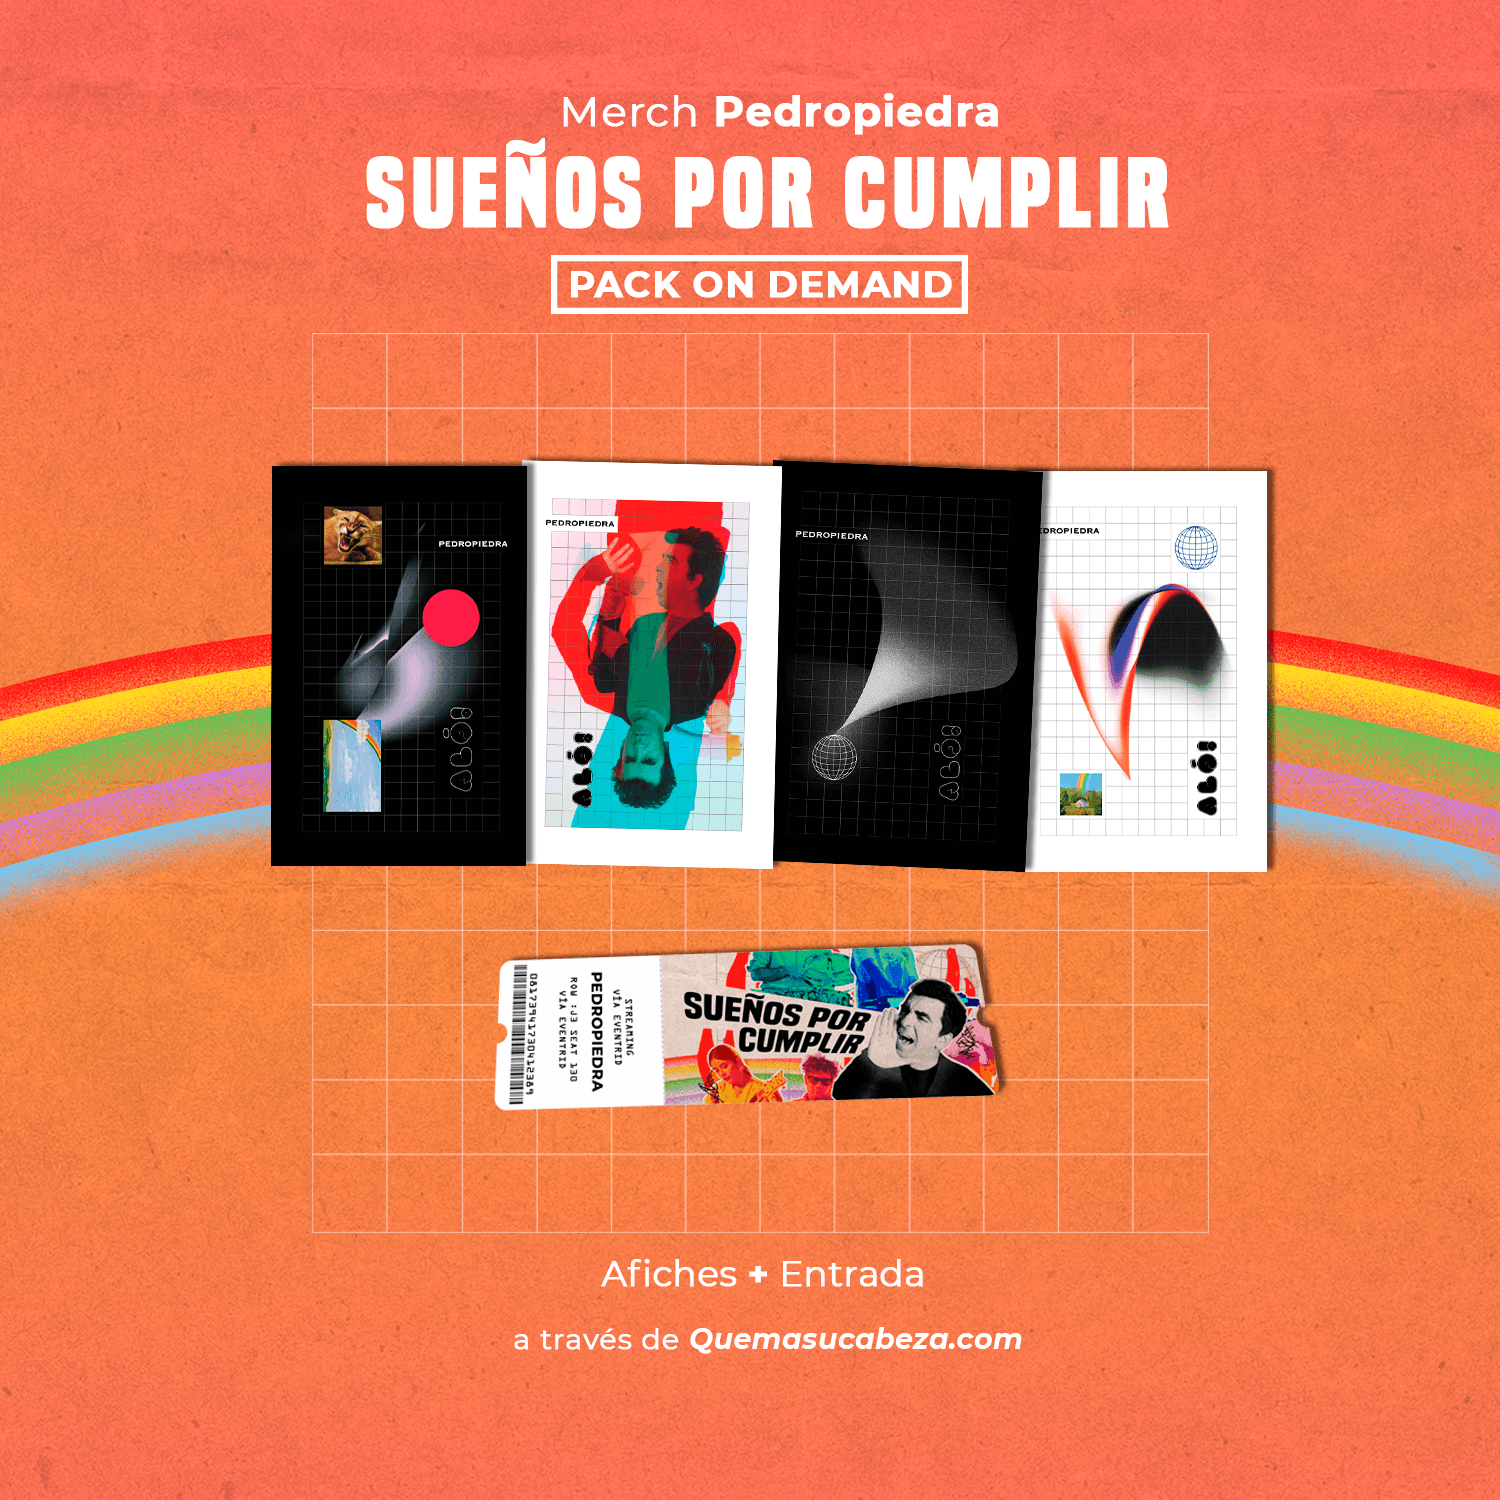 Posters + Entrada (PACK ON DEMAND)